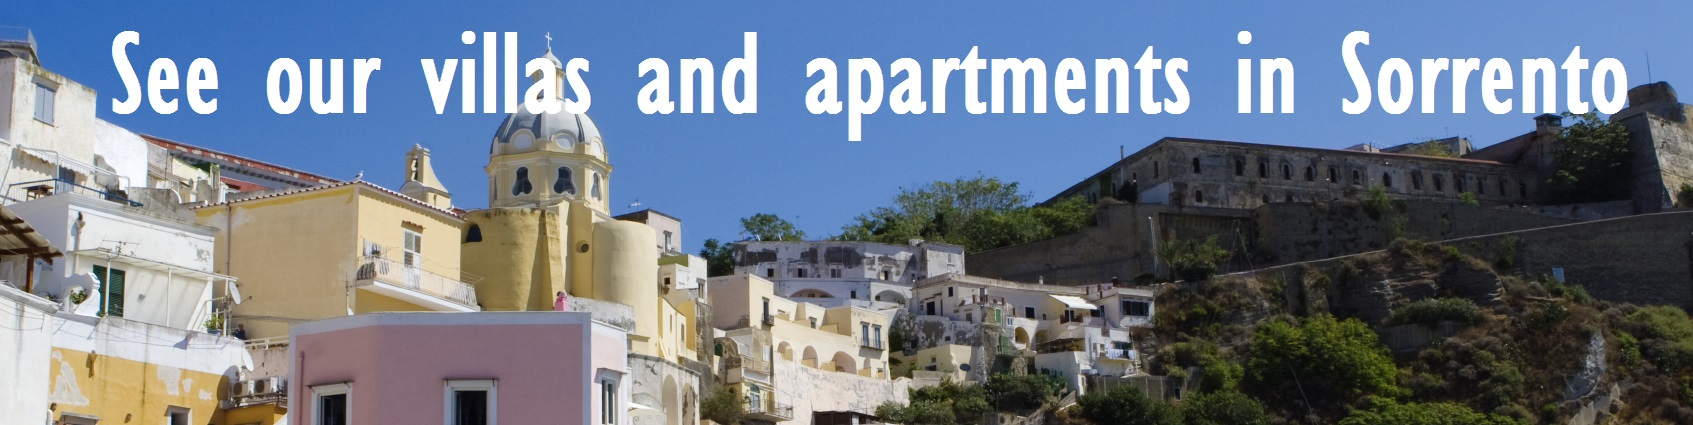 Villas and apartments in Sorrento